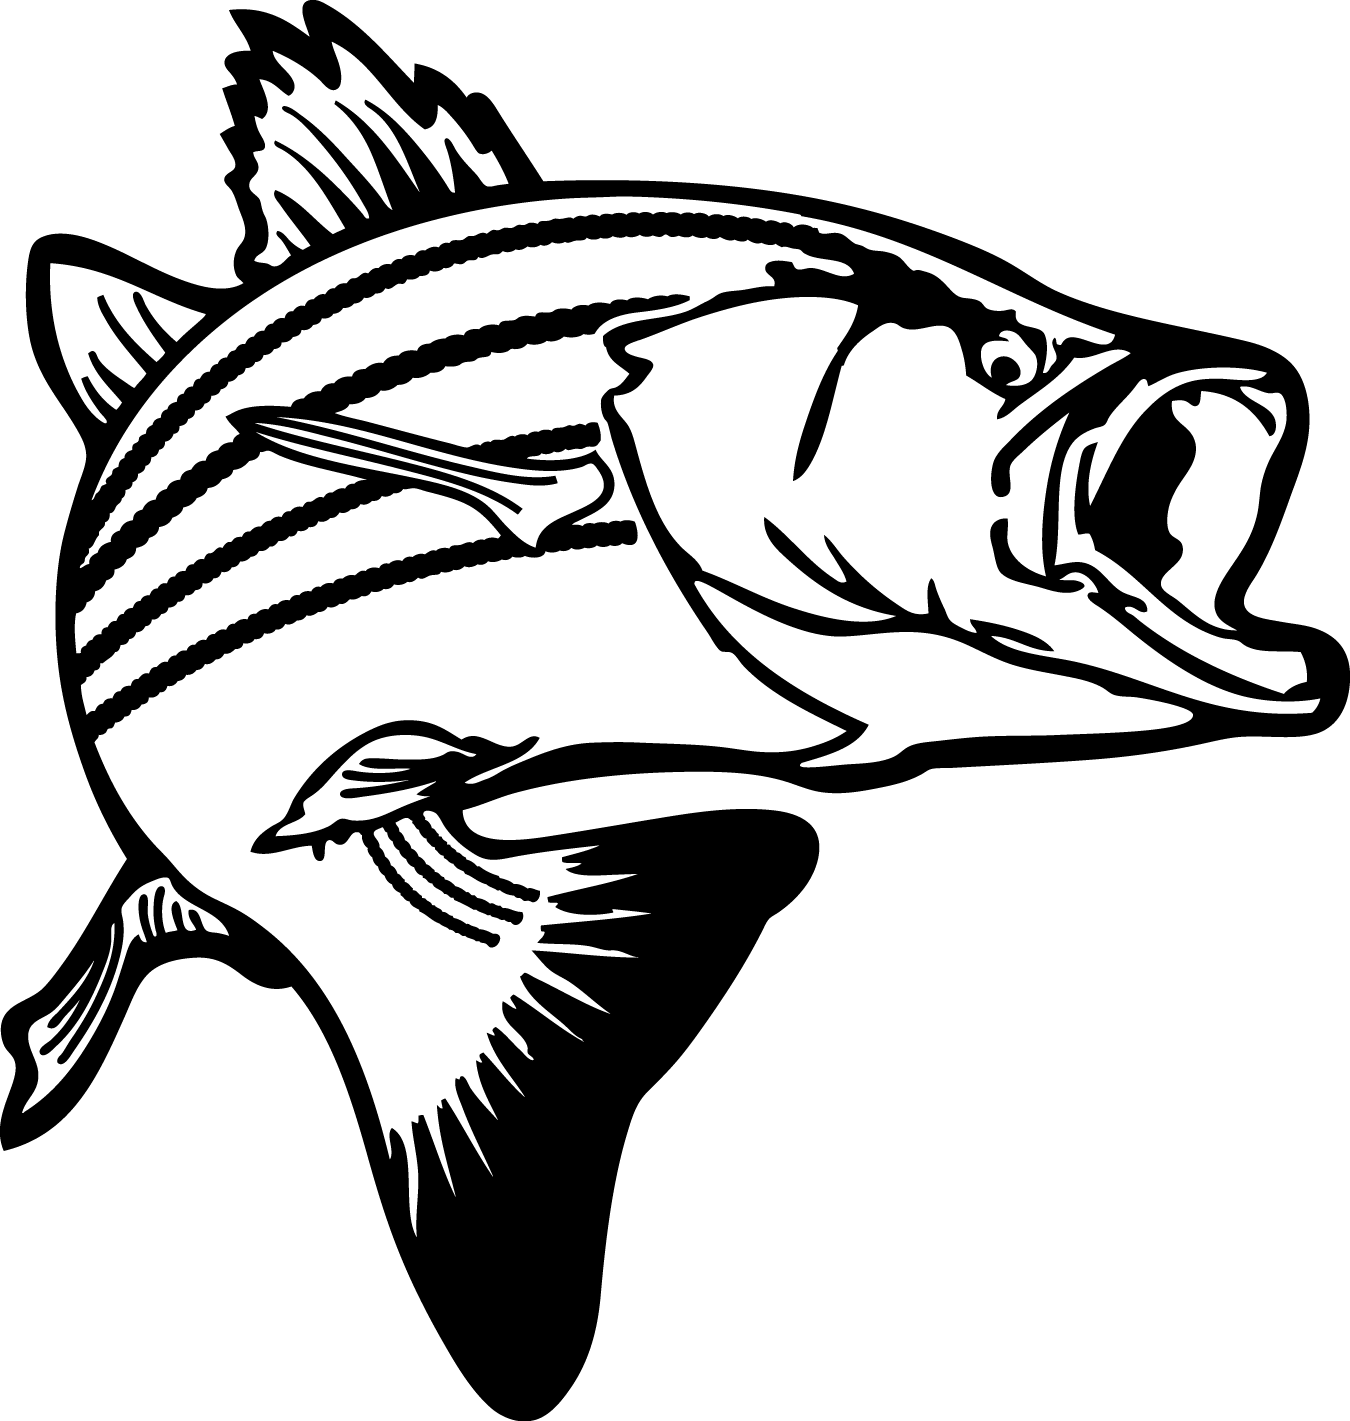 Snook drawing. Free striped bass cliparts